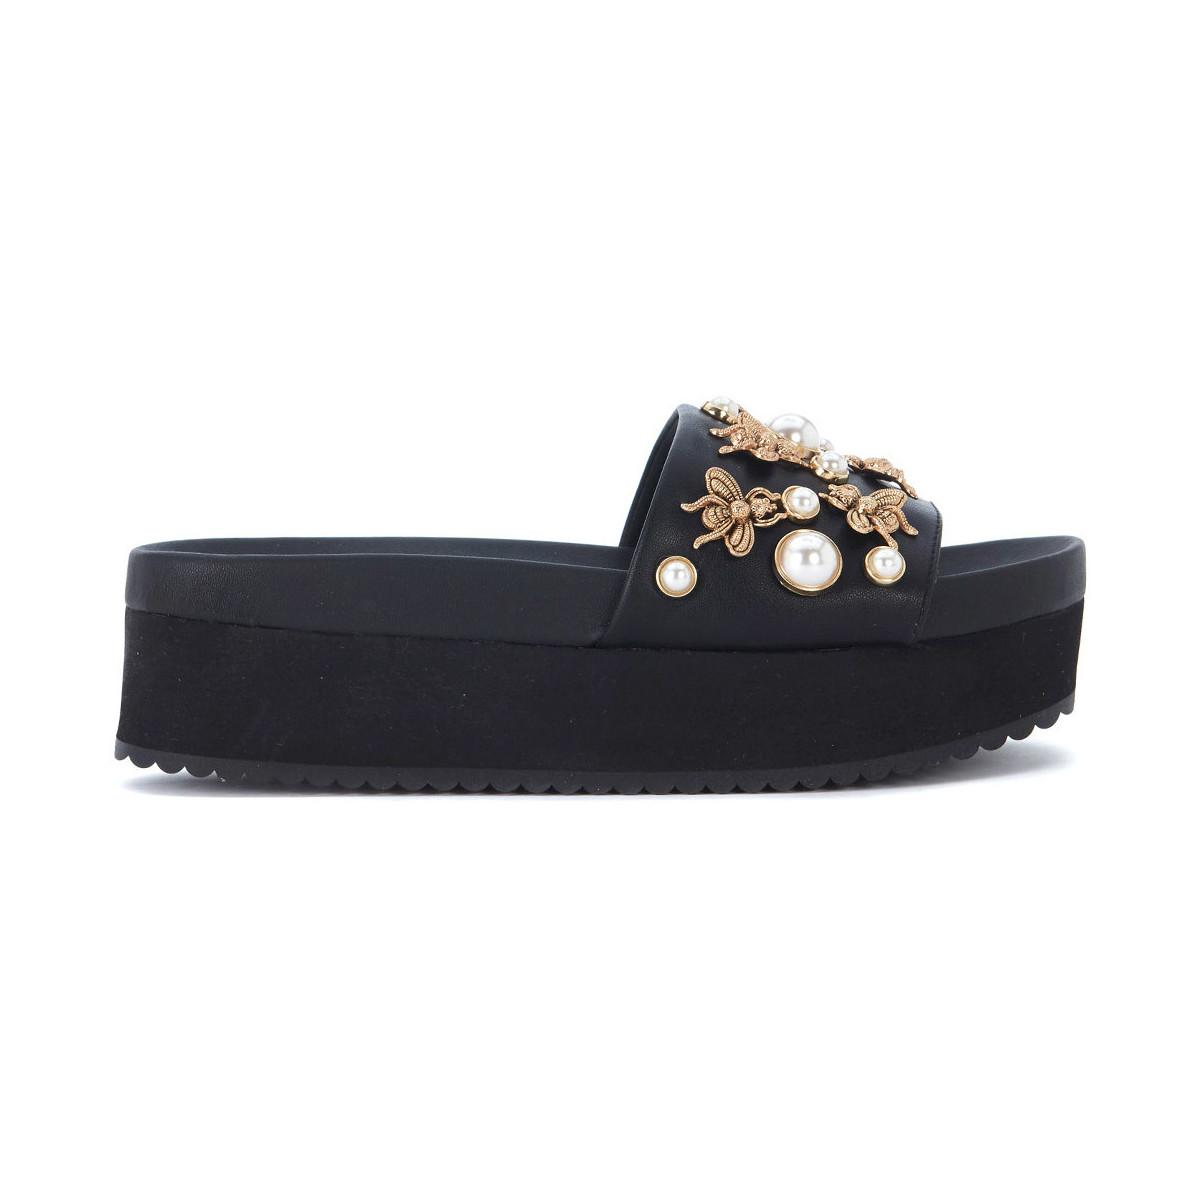 7be16d430dc Adorn Black Eco Leather Slipper With Pearls And Insects Women's Sandals In  Black